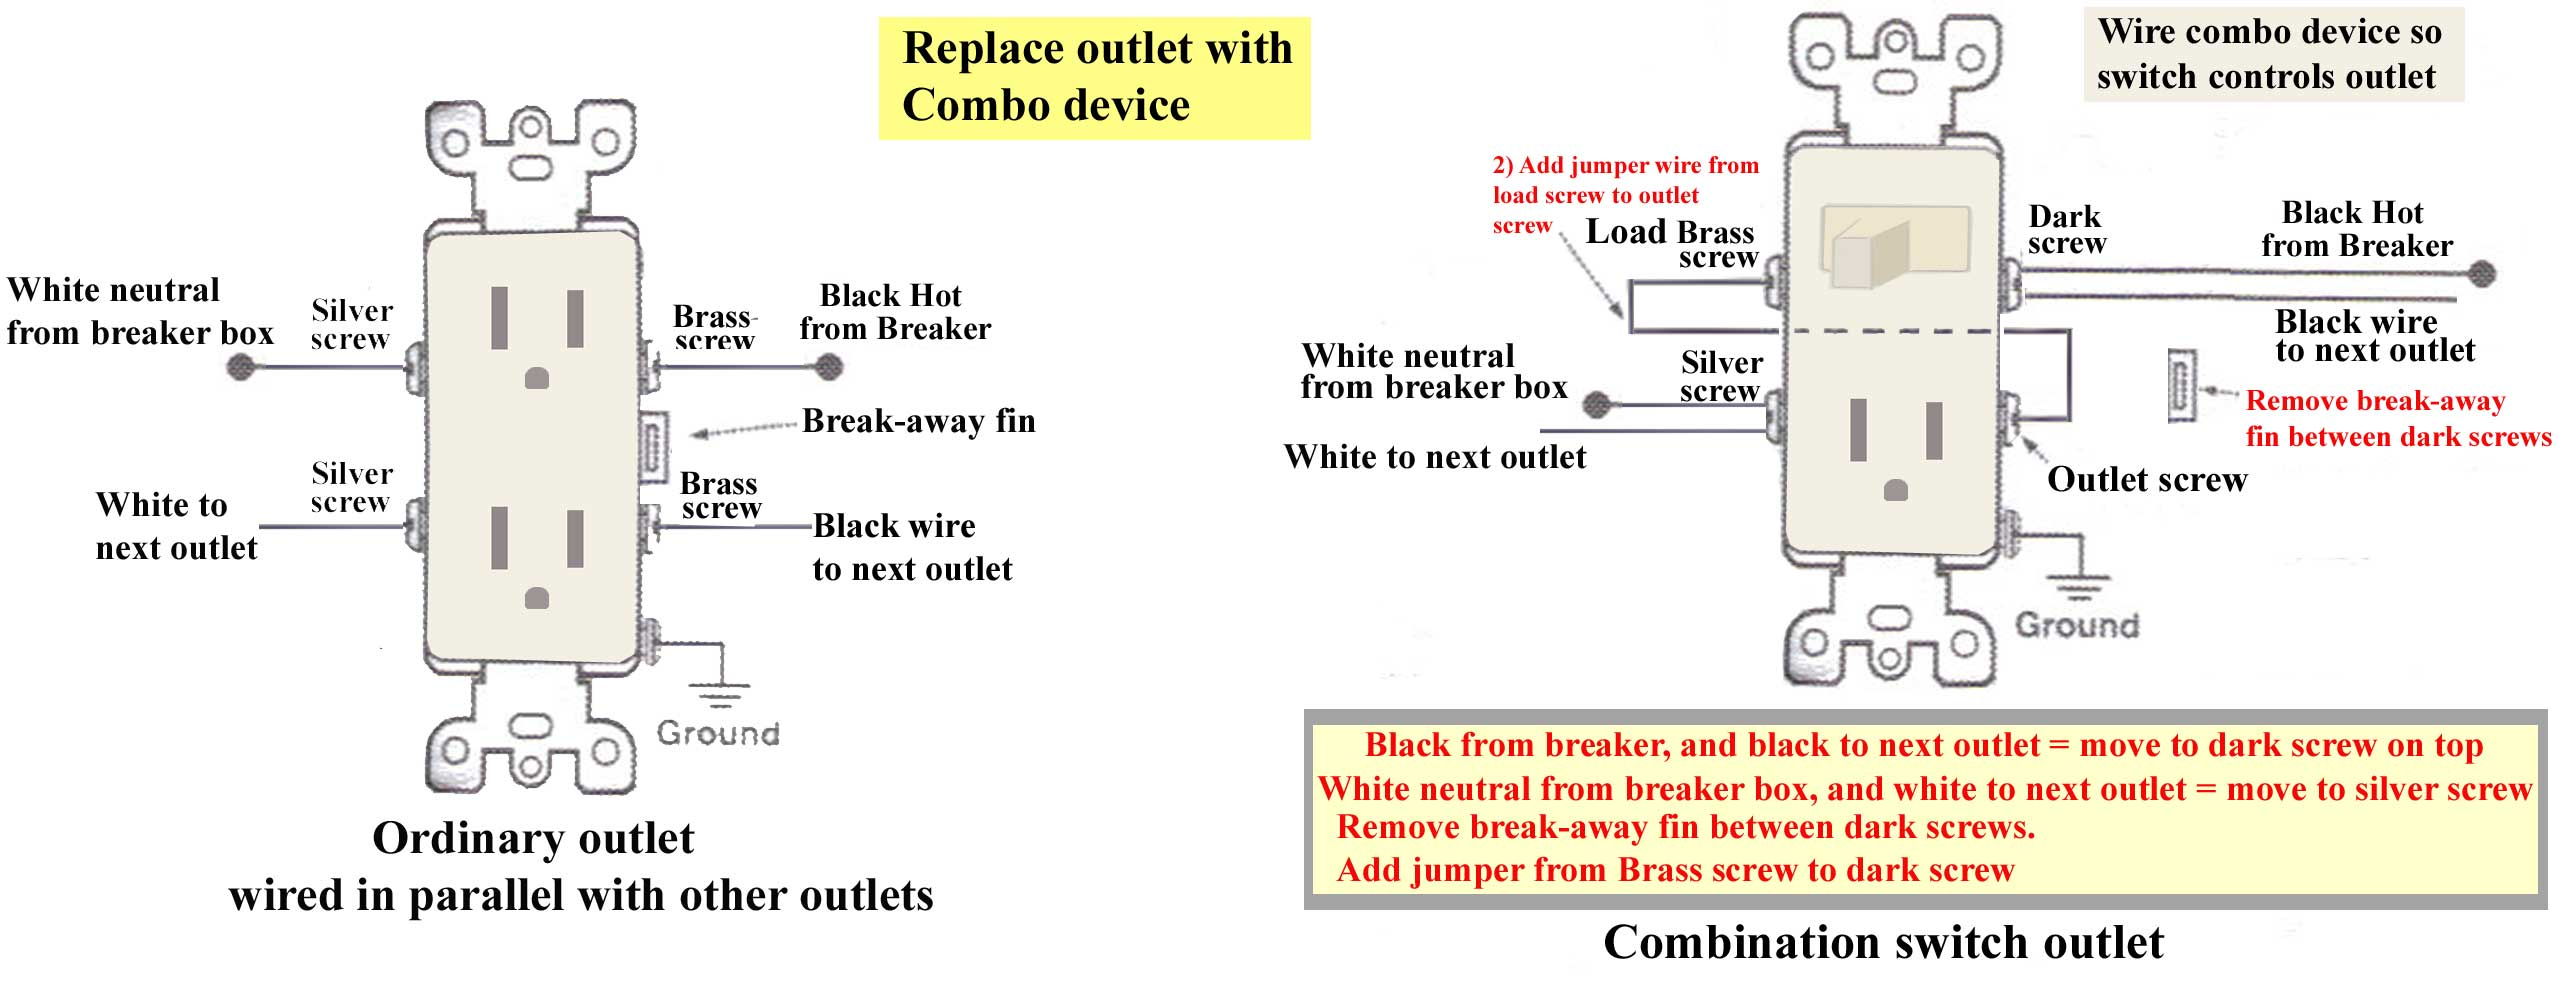 Combo switch replaces outlet 900 how to replace outlet with combo switch switched electrical outlet wiring diagram at fashall.co